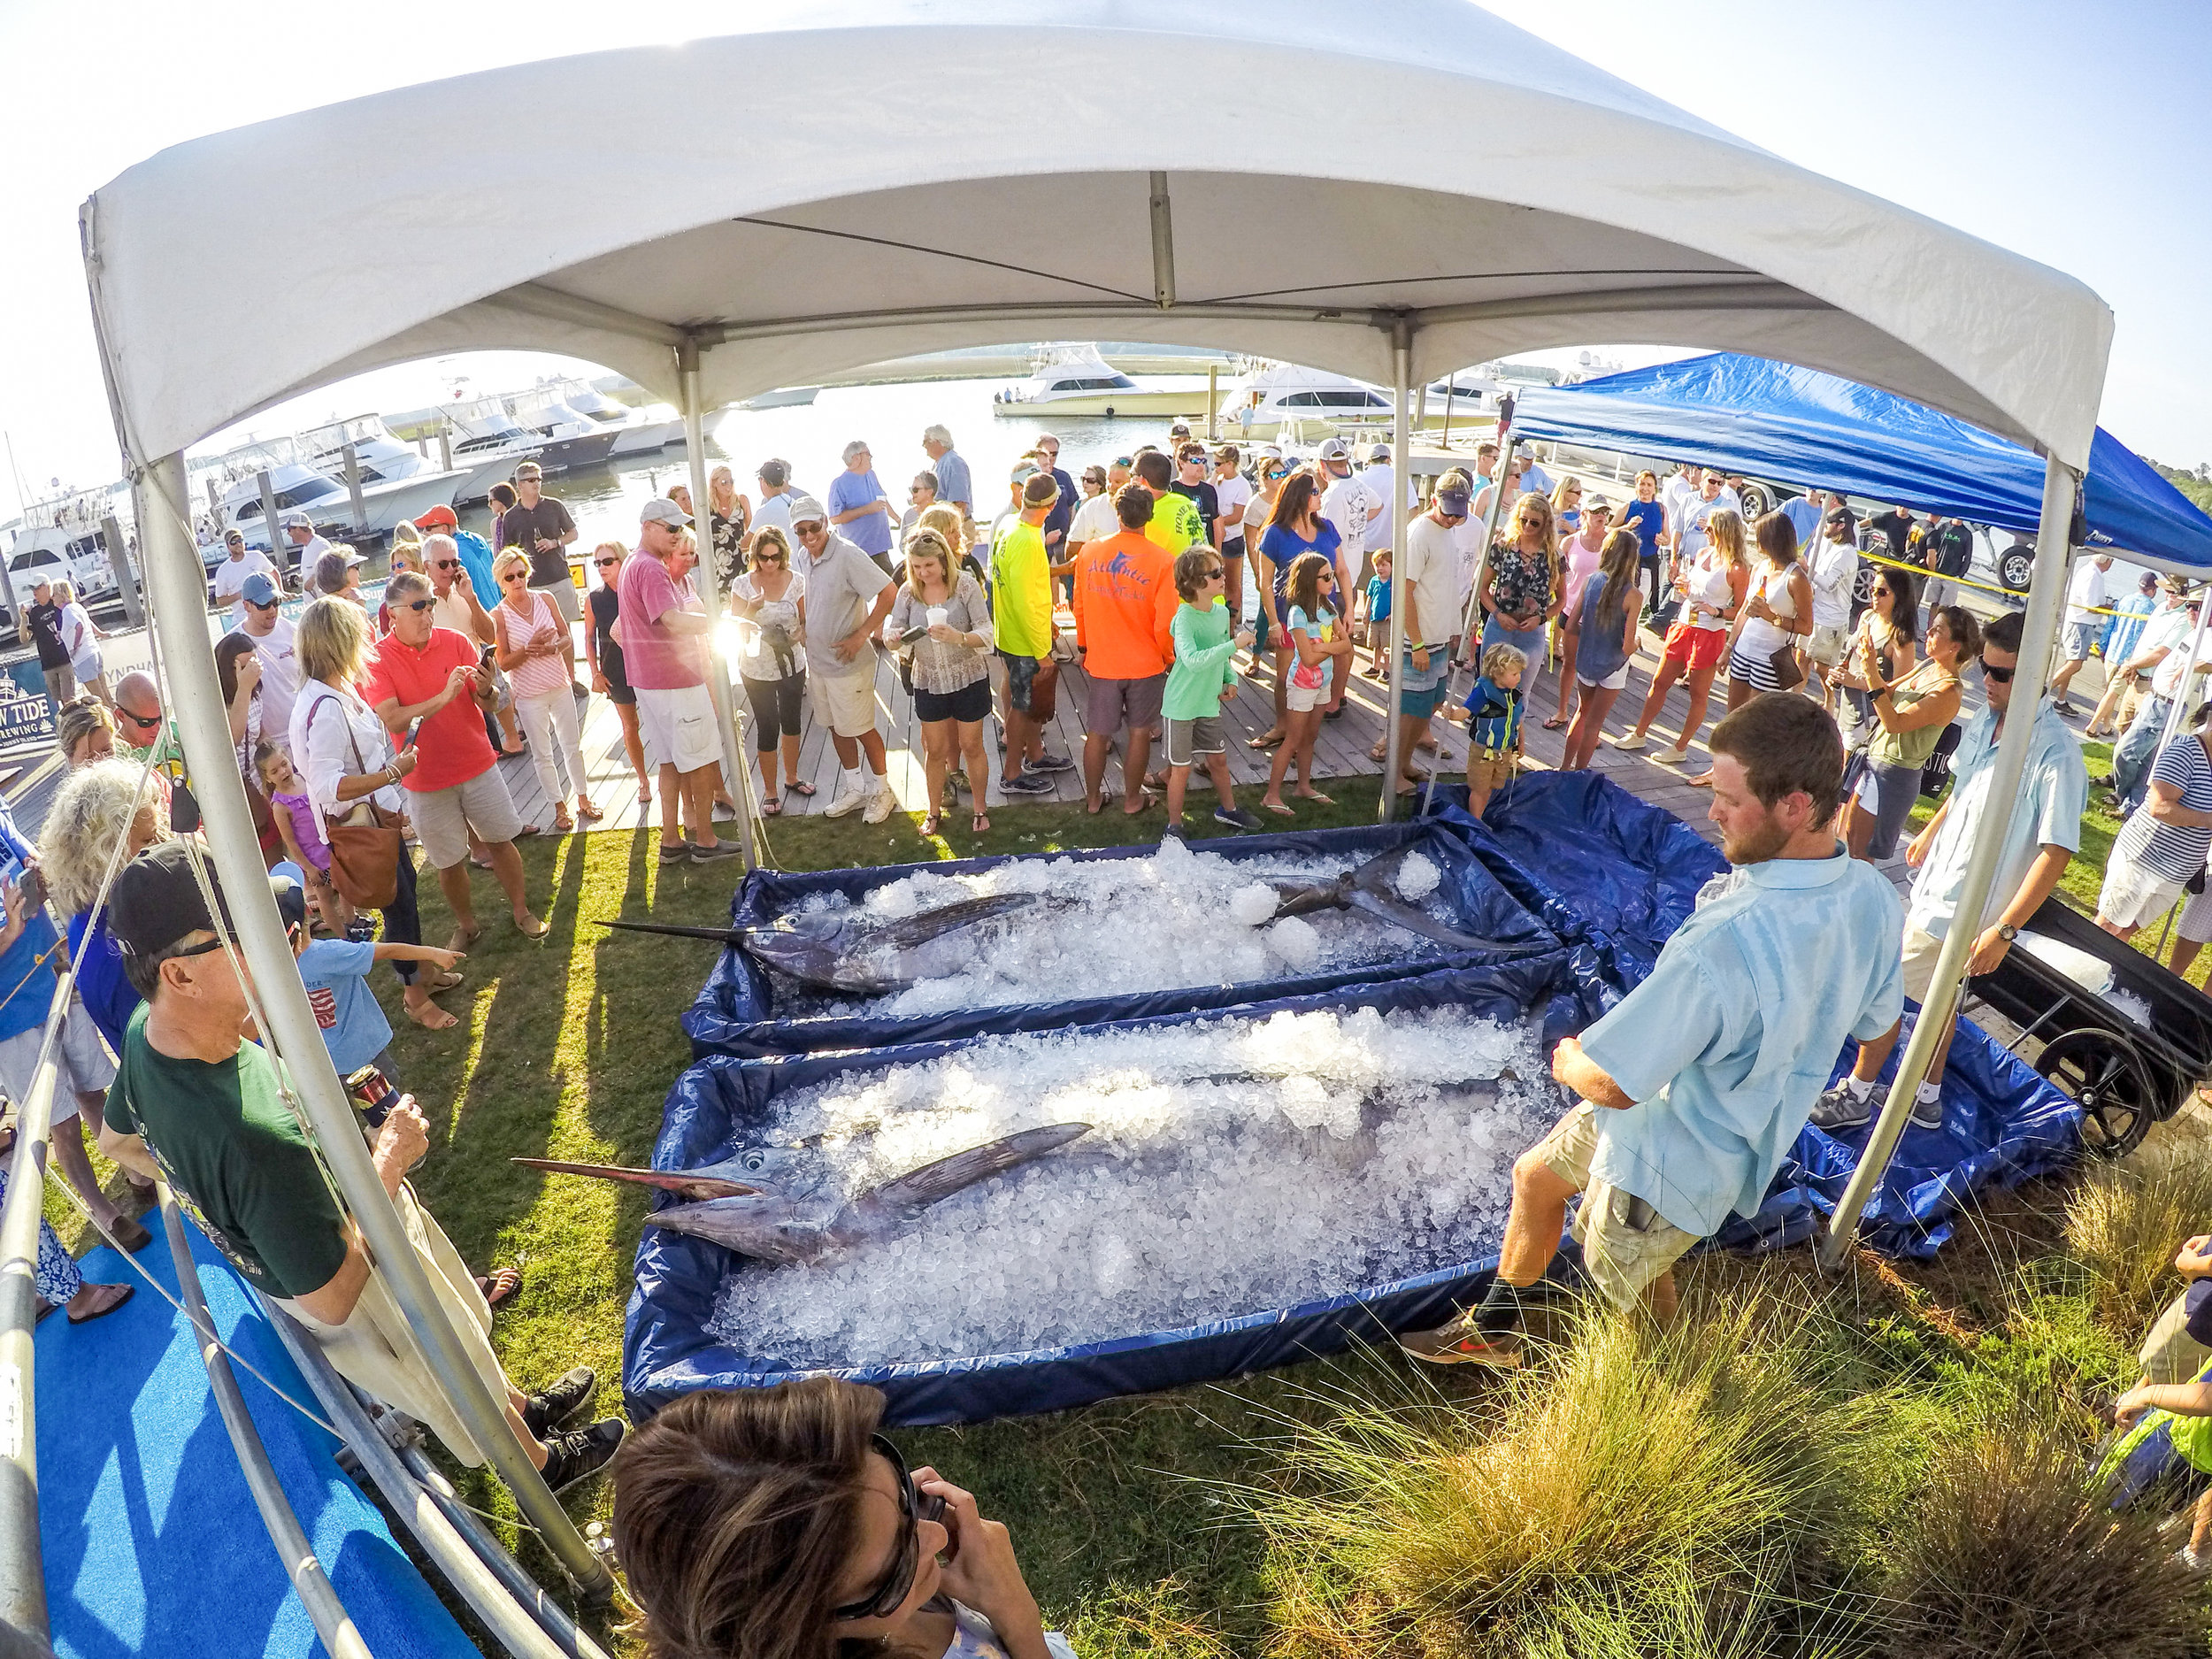 The crowds gathered to see the iced down blue marlin_credit Cameron J. Rhodes-2 (2).jpg